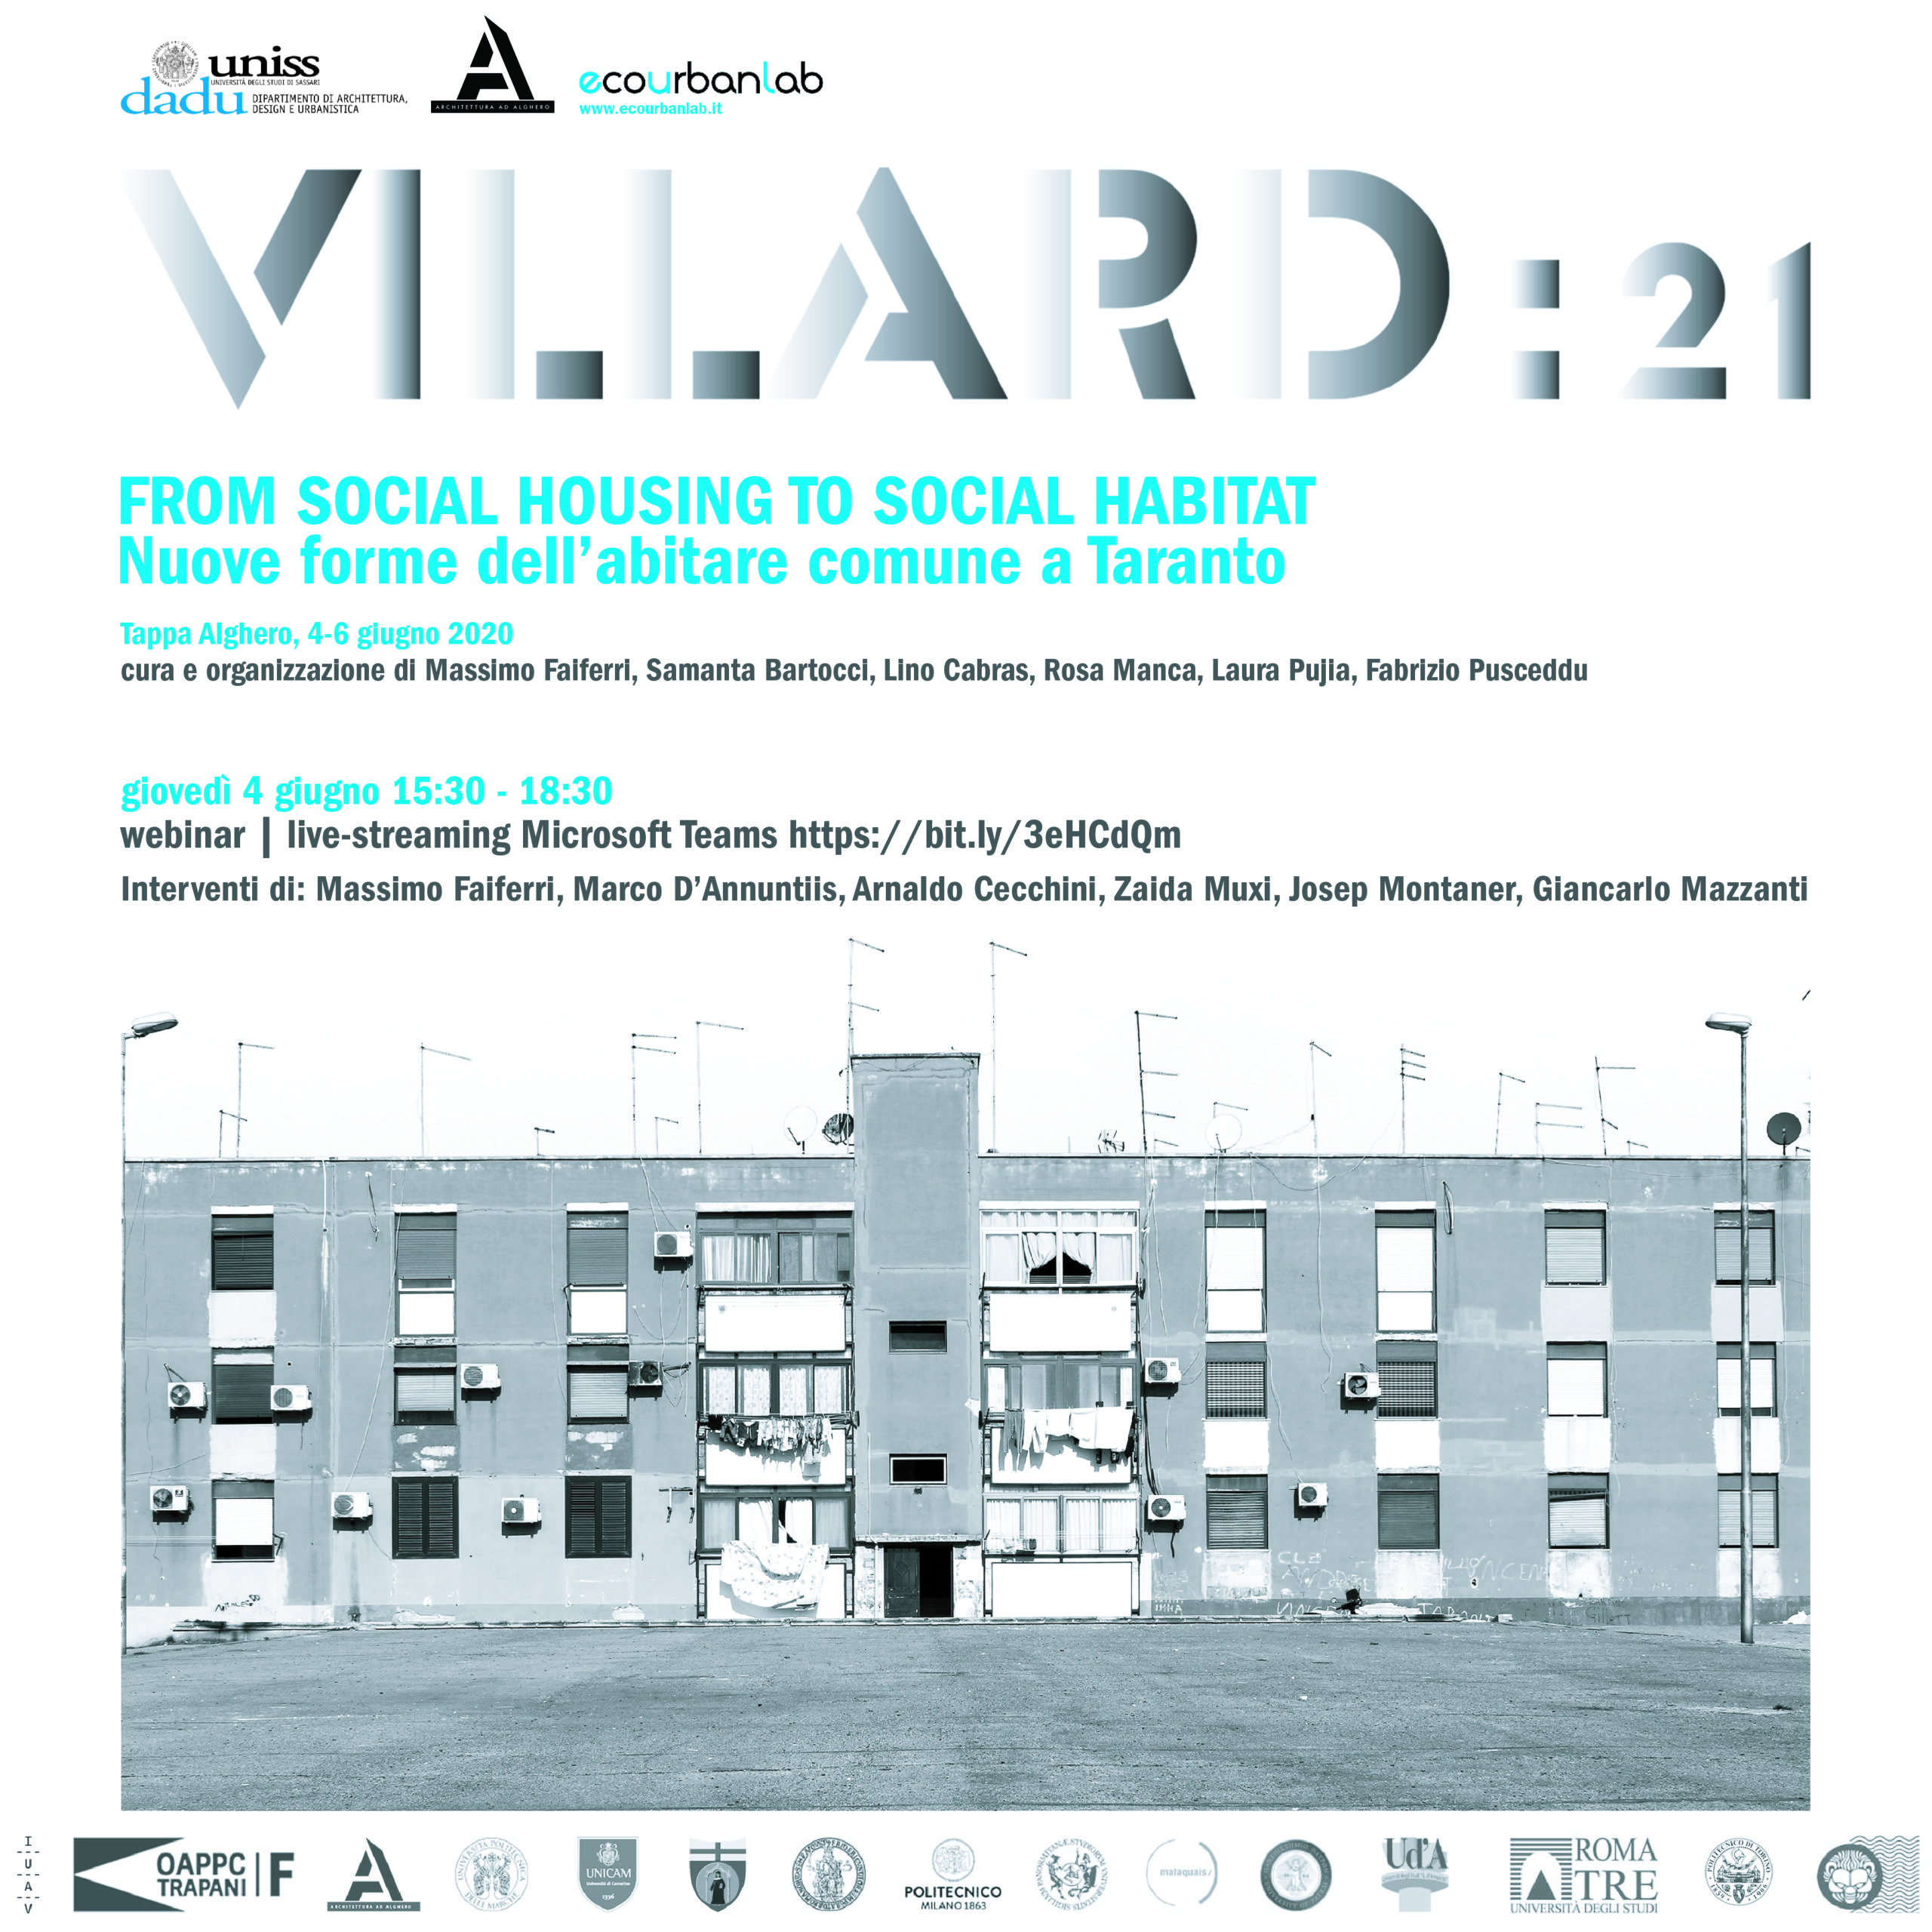 From social housing to social habitat